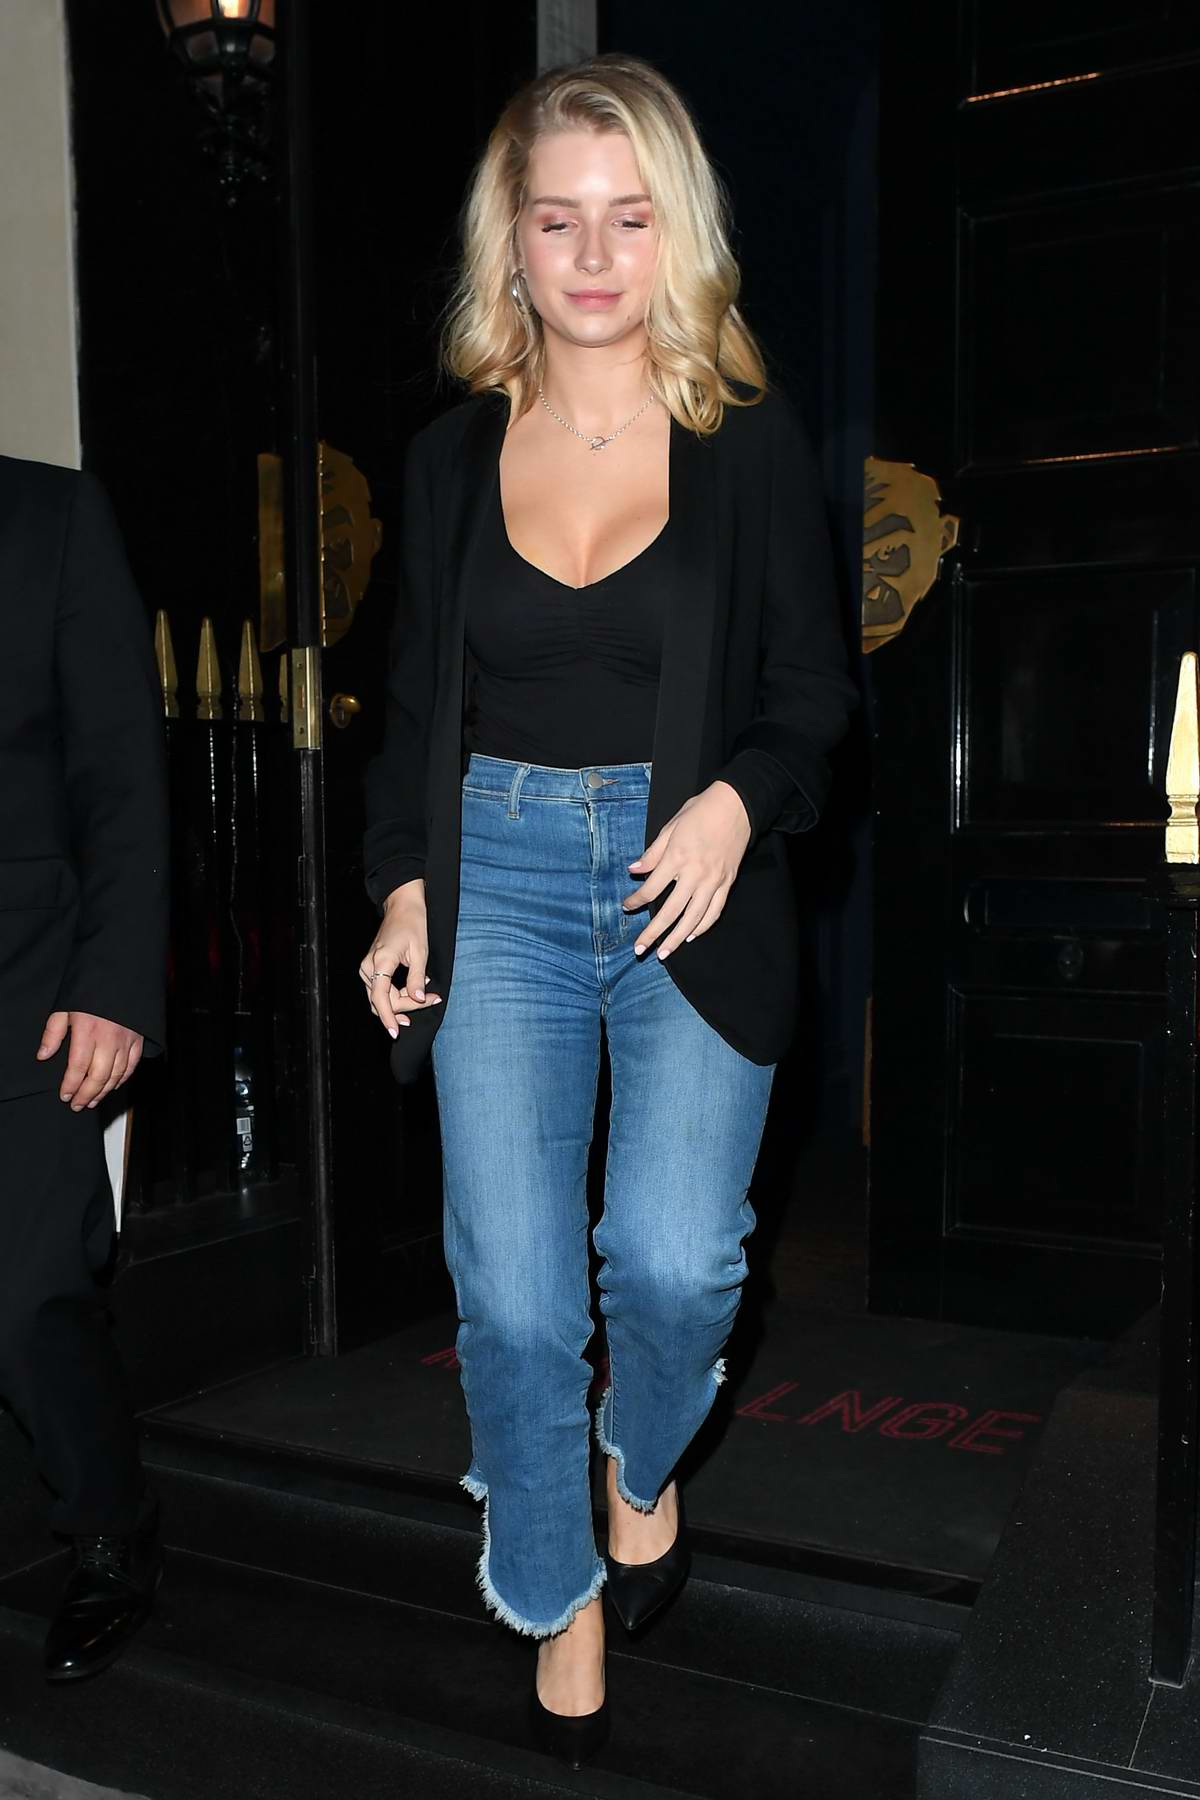 Lottie Moss wears a black blazer with a low-cut top and cropped jean during night out at the Monkey Club in London, UK